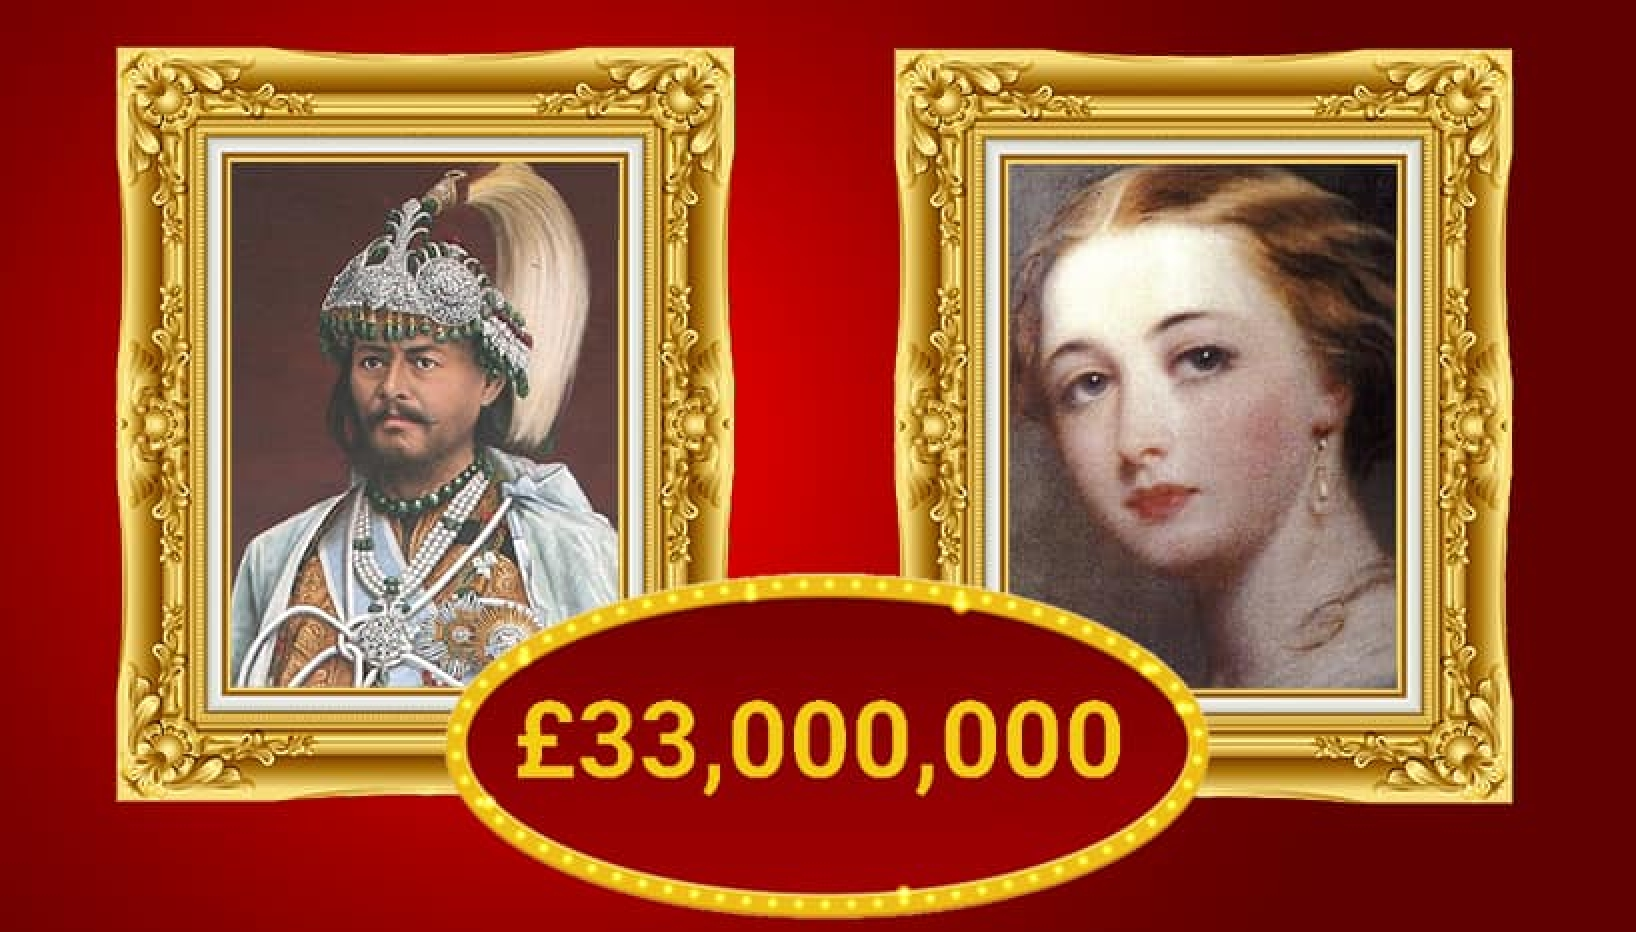 Did Jung Bahadur Rana Really Pay £33 Million To A Sex-Worker In England? Here's How The Story Goes!